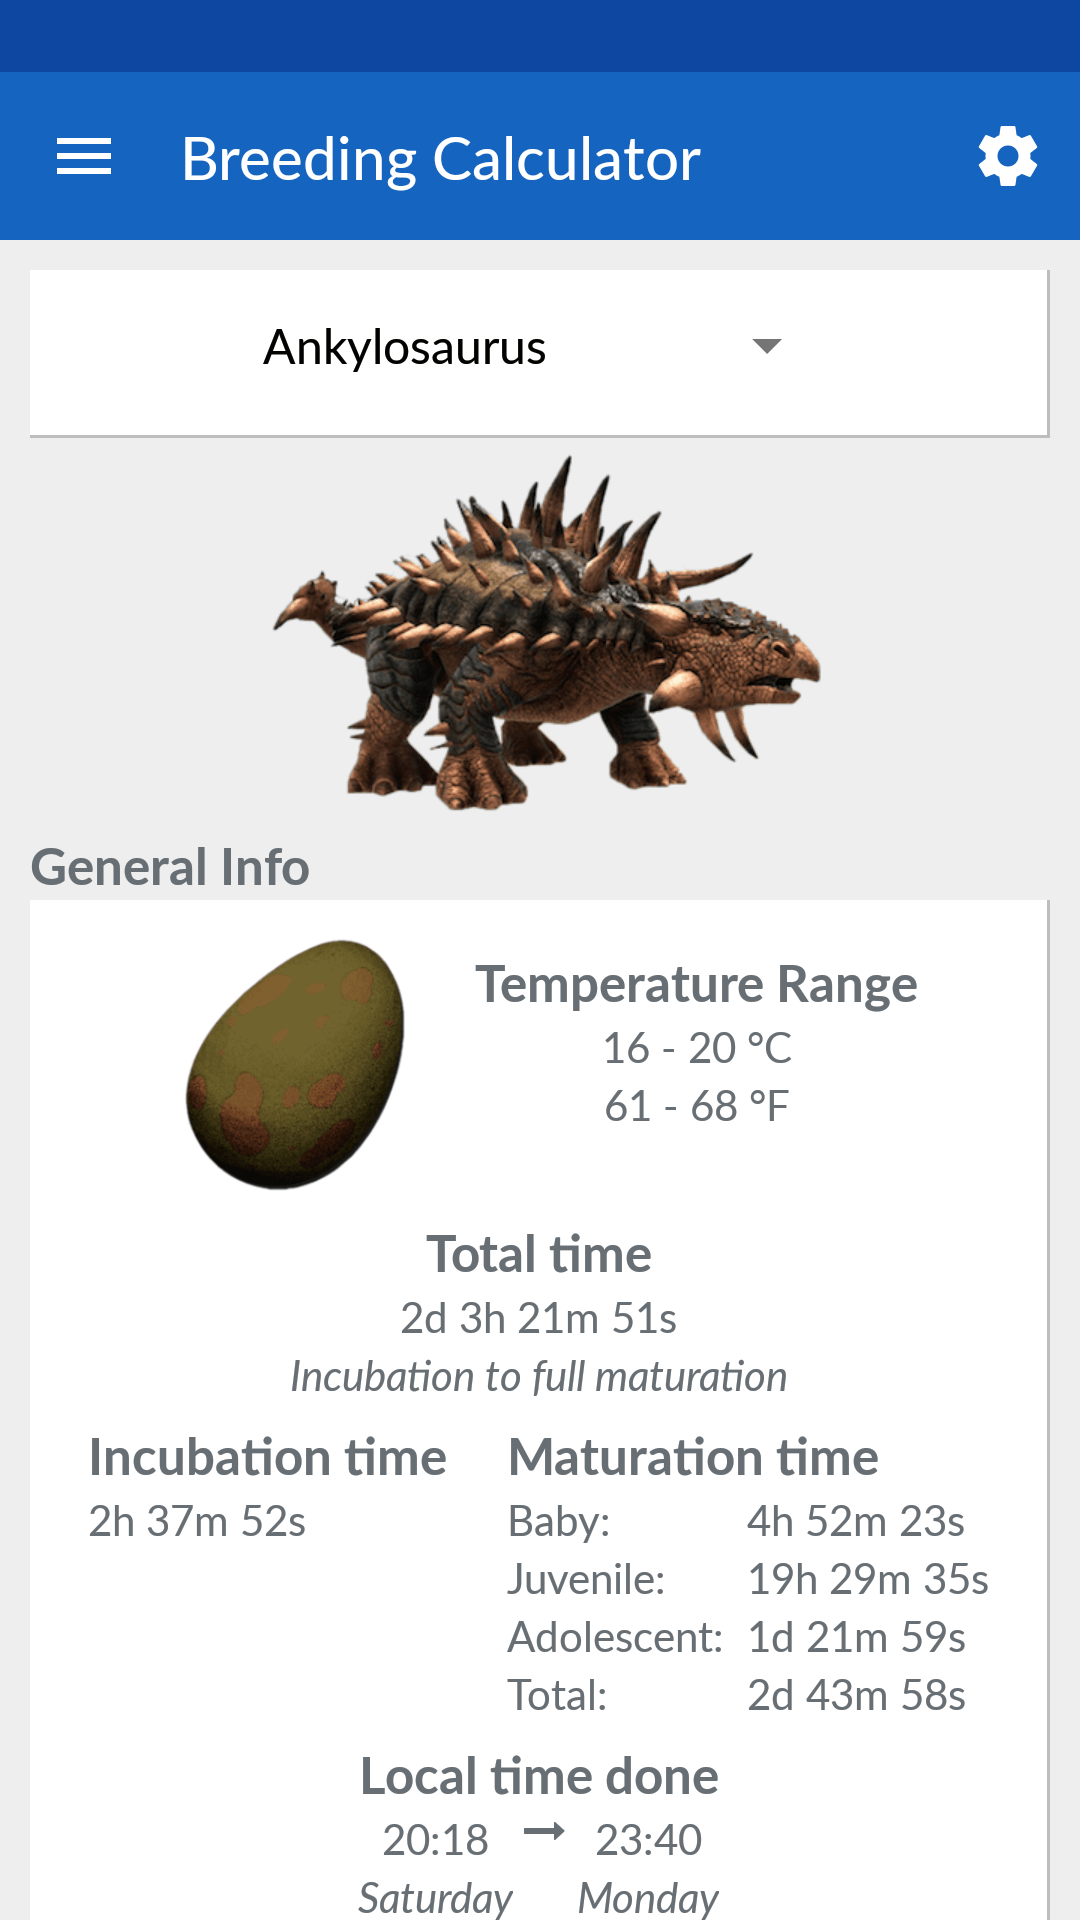 Ark Survival Evolved Breeding Calculator Survive Ark The ark item id and spawn command for daeodon, along with its gfi code, blueprint path, and example commands. ark survival evolved breeding